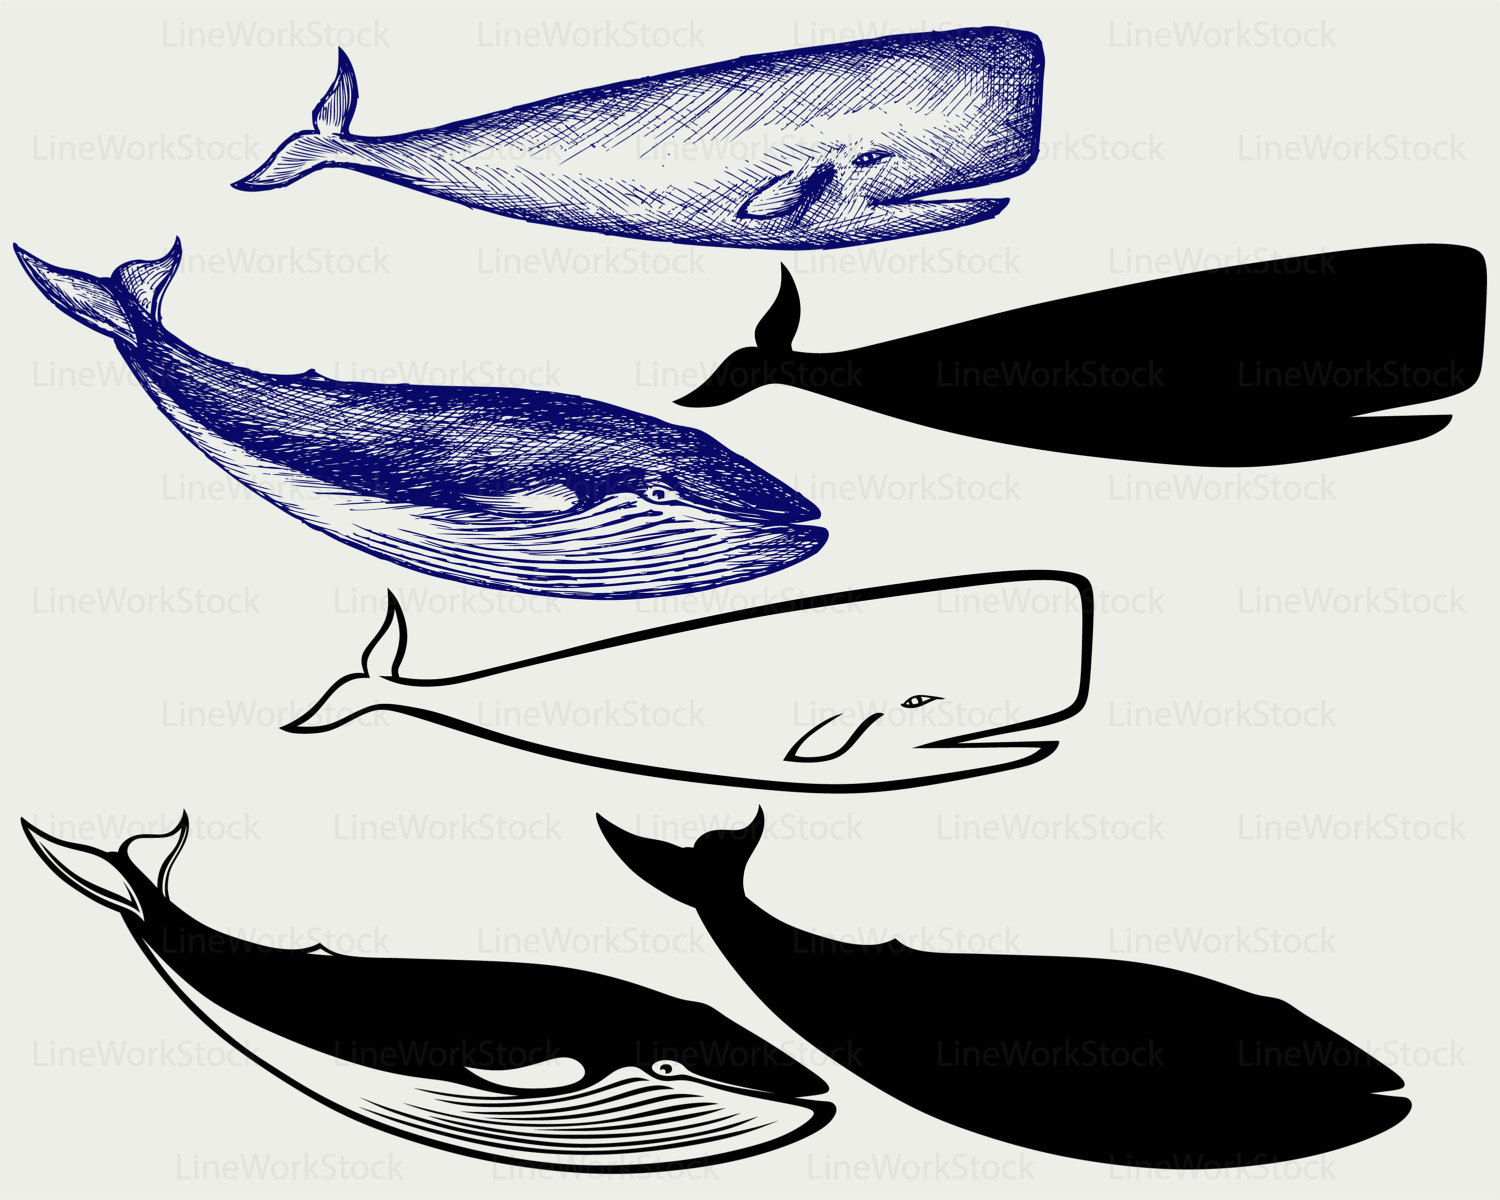 Blue Whale svg #1, Download drawings